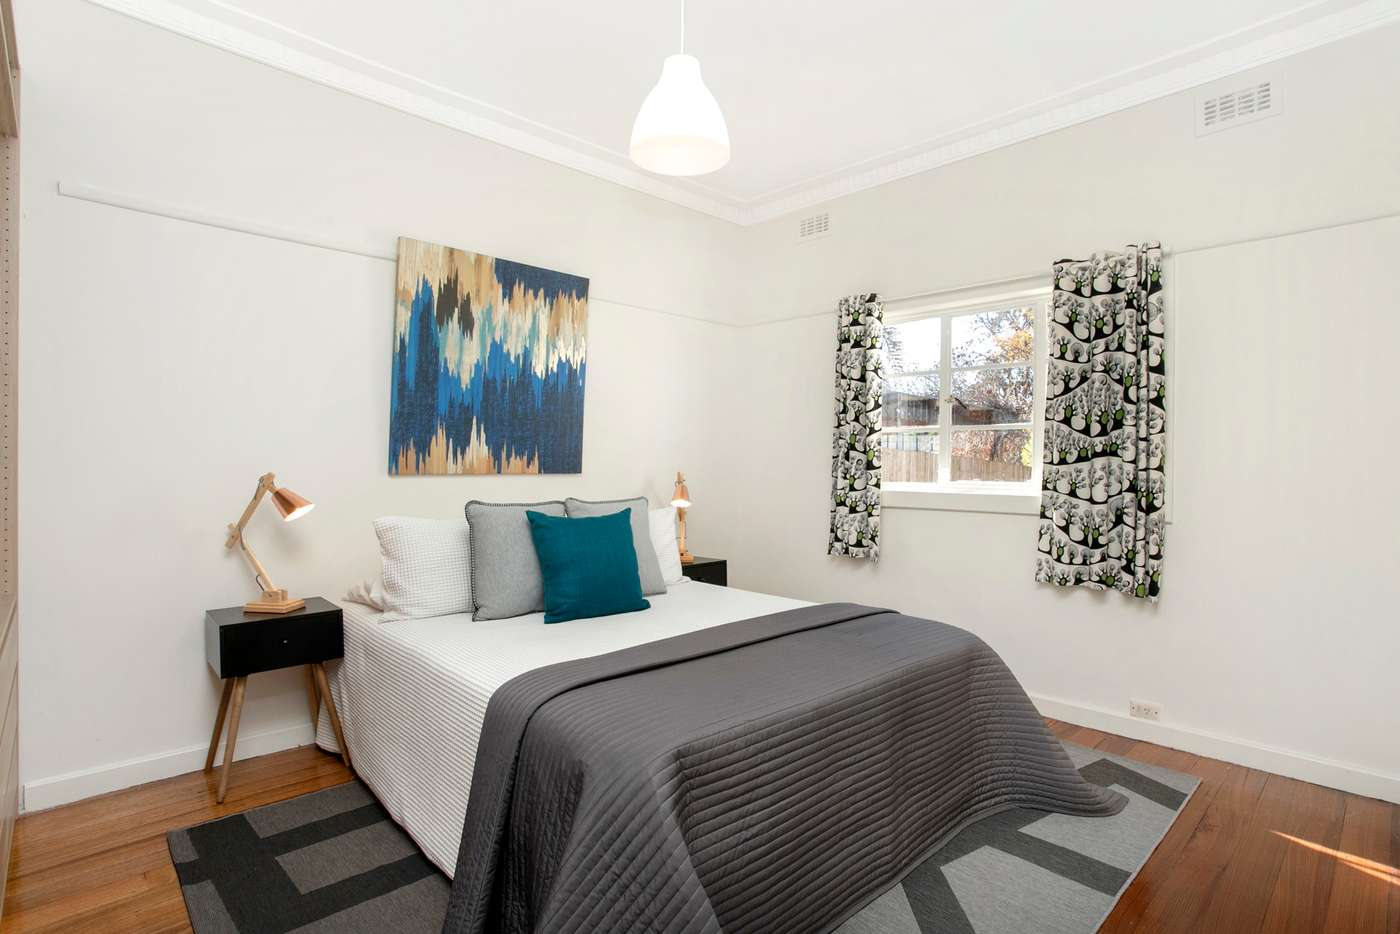 Sixth view of Homely house listing, 34 Mernda Street, Sunshine West VIC 3020